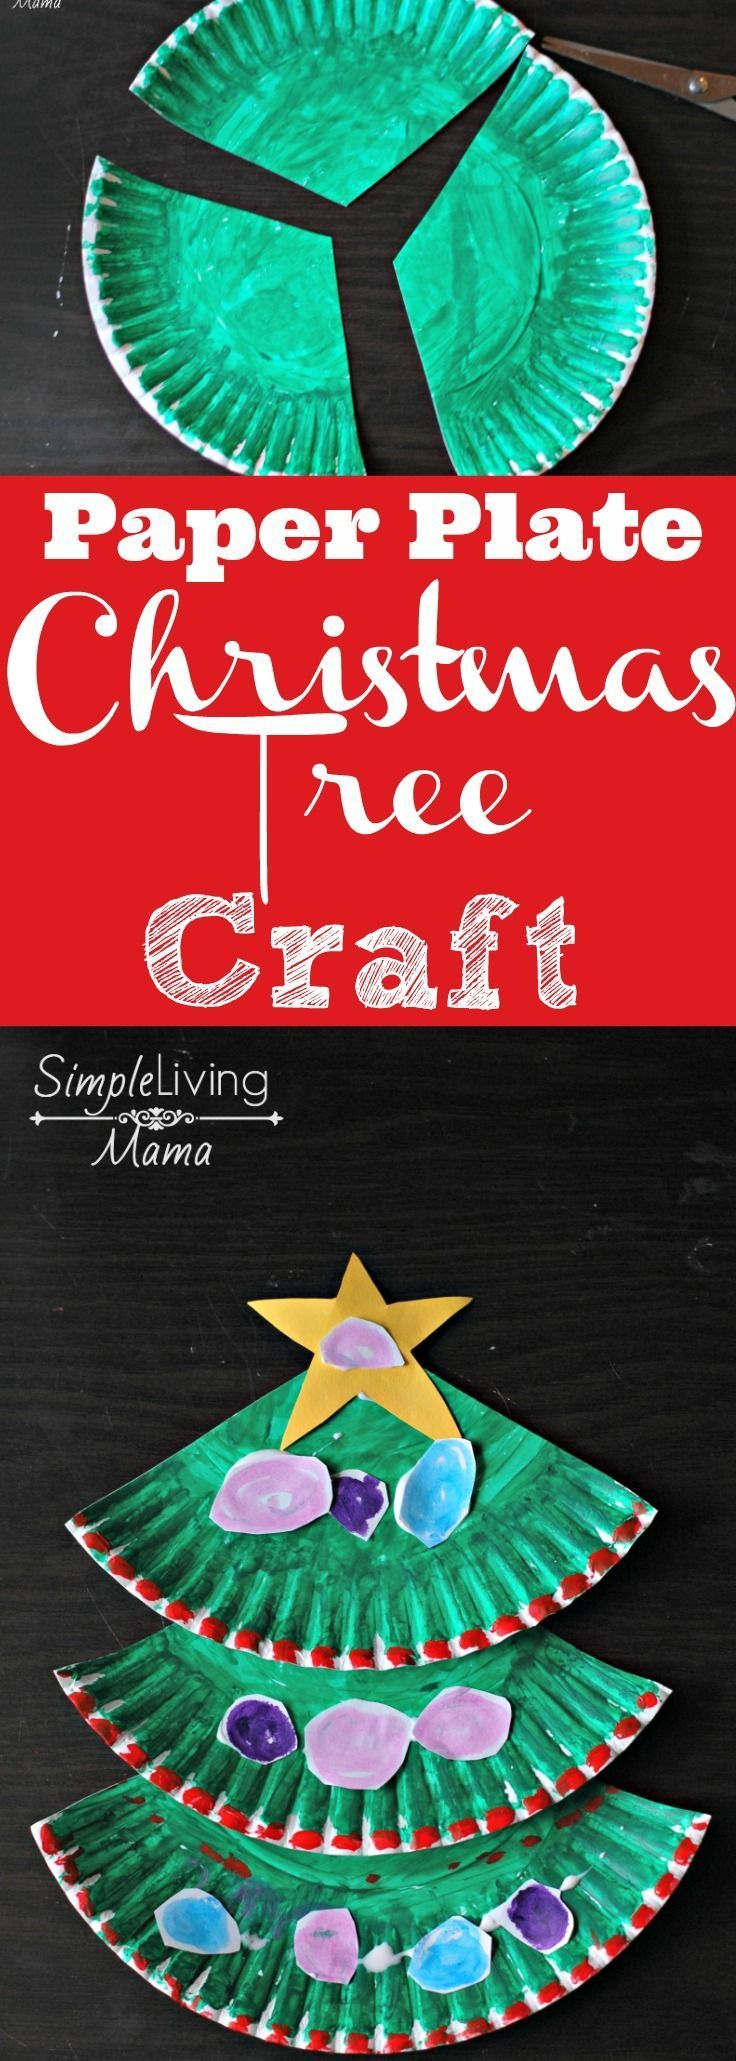 A DIY Paper Plate Christmas Tree craft